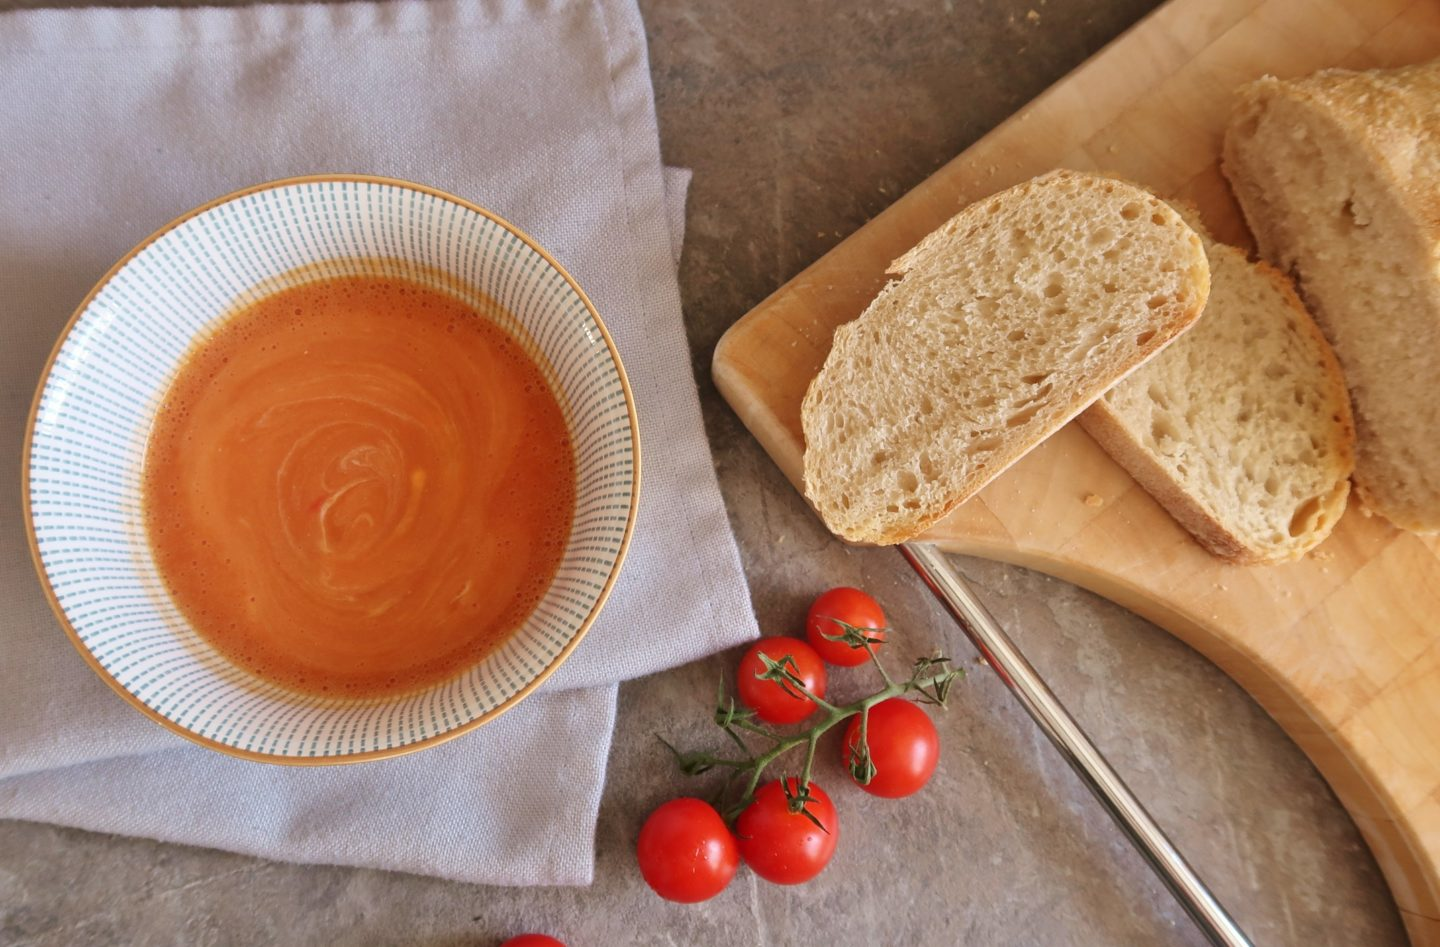 Back To School And Cream of Tomato Soup Recipe With Piccolo Tomatoes | Ad